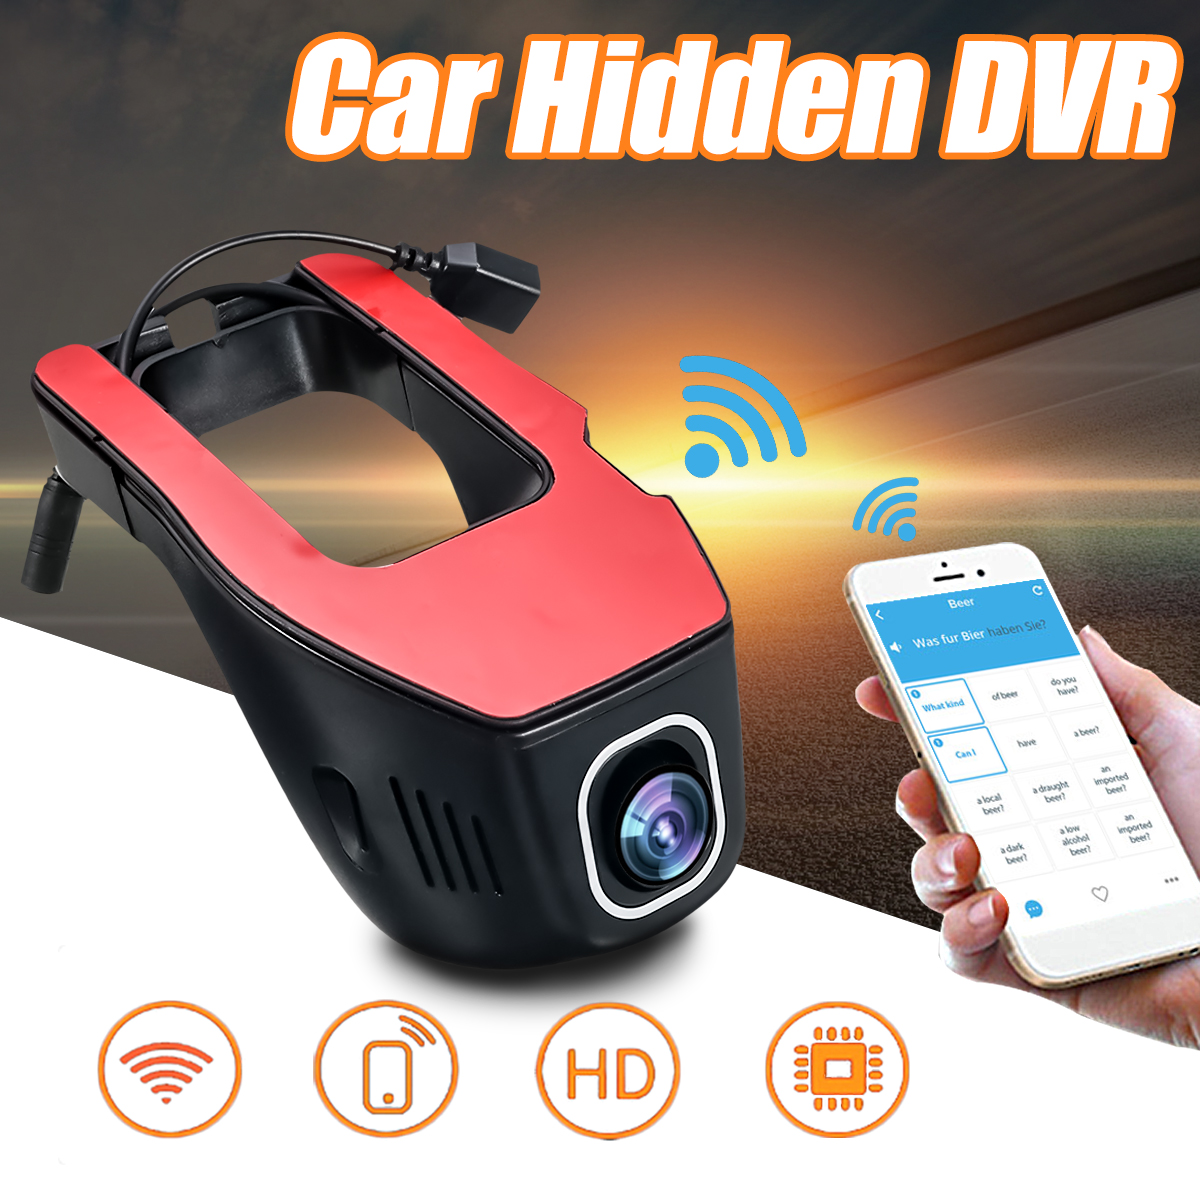 1080P Mini Wifi HD Car H idden DVR Video Recorder Rear Camera Dual Lens Camcorder Night Vision Dash Cam Registrator for App for kia sorento car dvr driving video recorder mini control app wifi camera black box registrator dash cam night vision